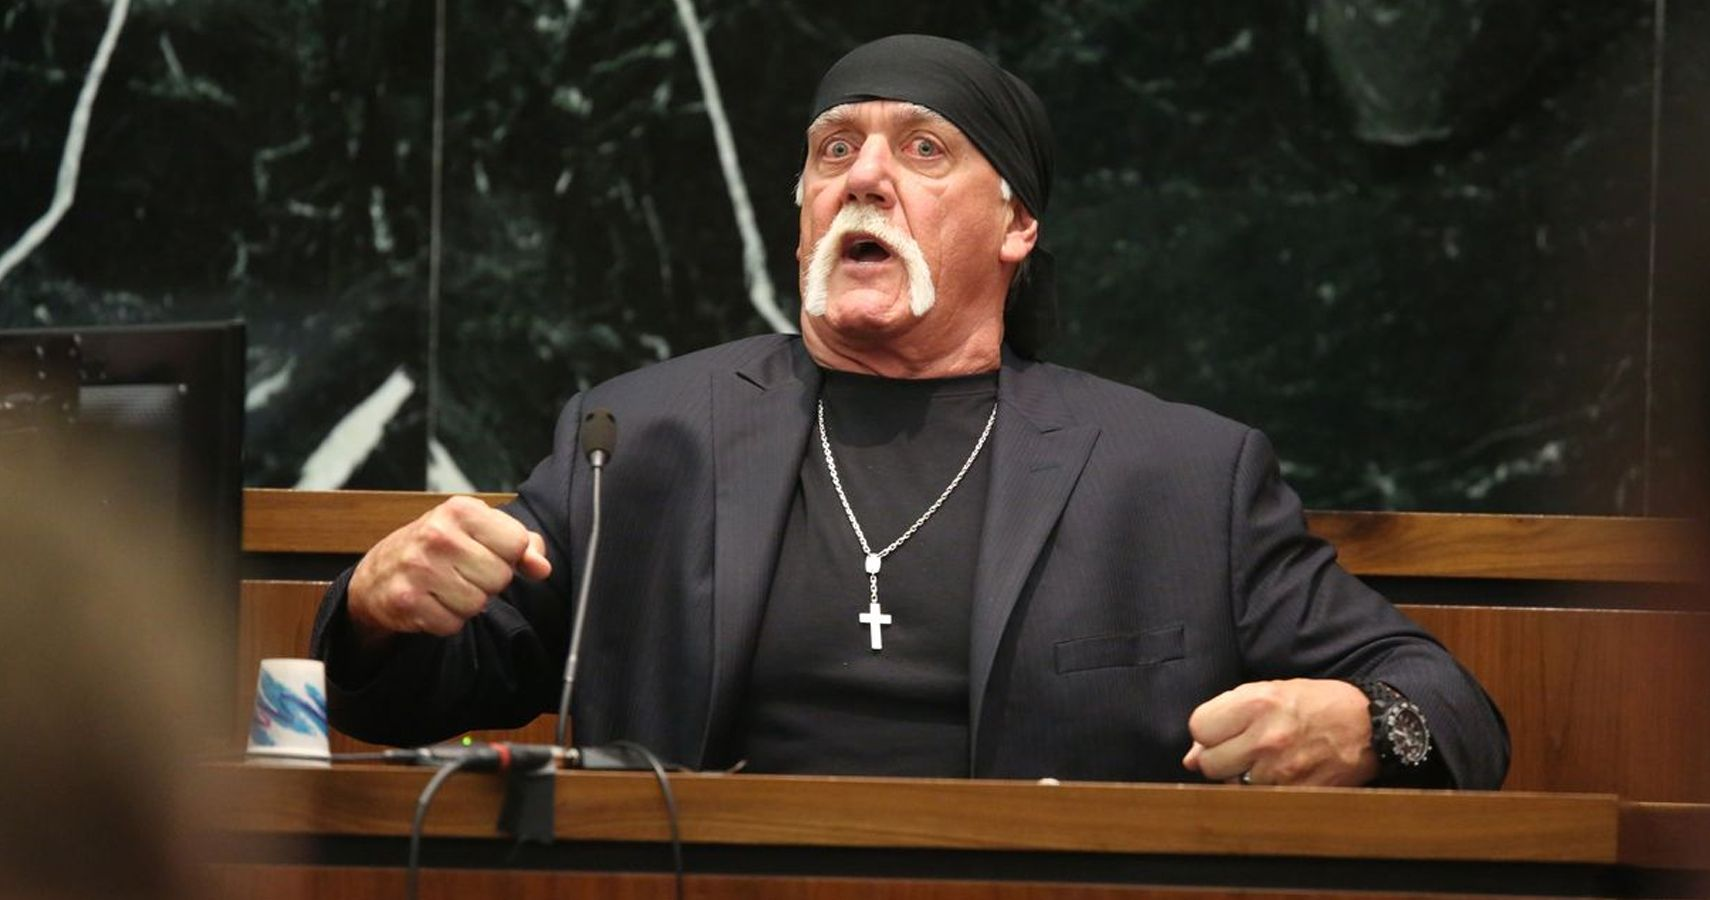 Hulk Hogan Makes Huge Purchase With Lawsuit Money